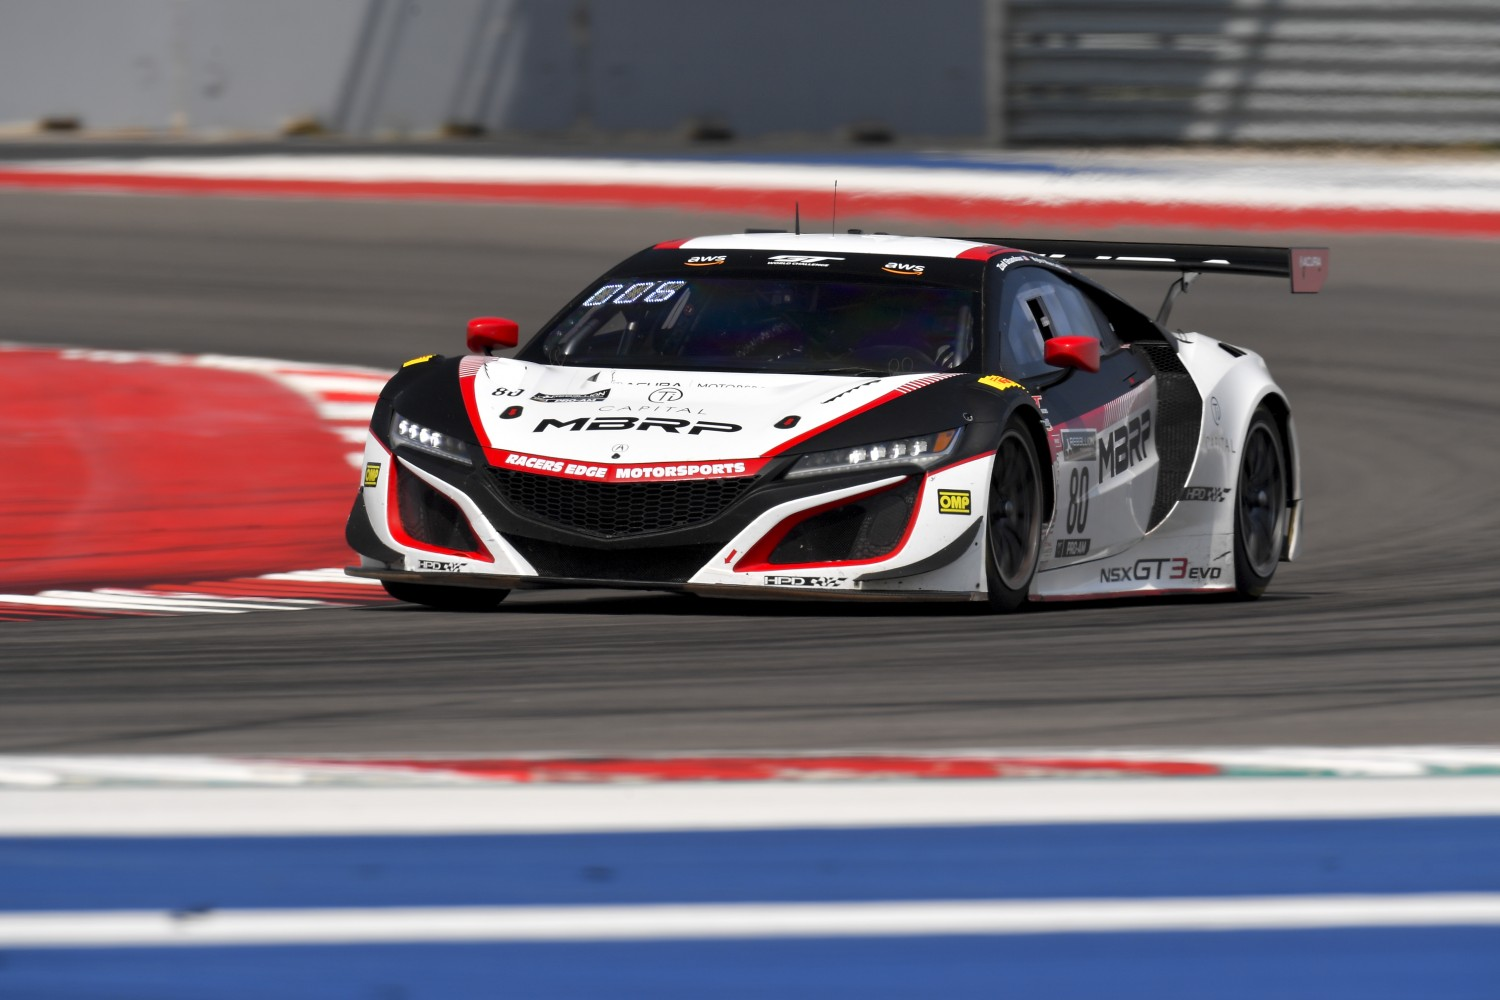 #80 Acura NSX GT3 of Ziad Ghandour and Kyle Marcelli, Racers Edge Motorsports, GT3 Pro-Am,      2020 SRO Motorsports Group - COTA2, Austin TX Photographer: Gavin Baker/SRO | © 2020 Gavin Baker